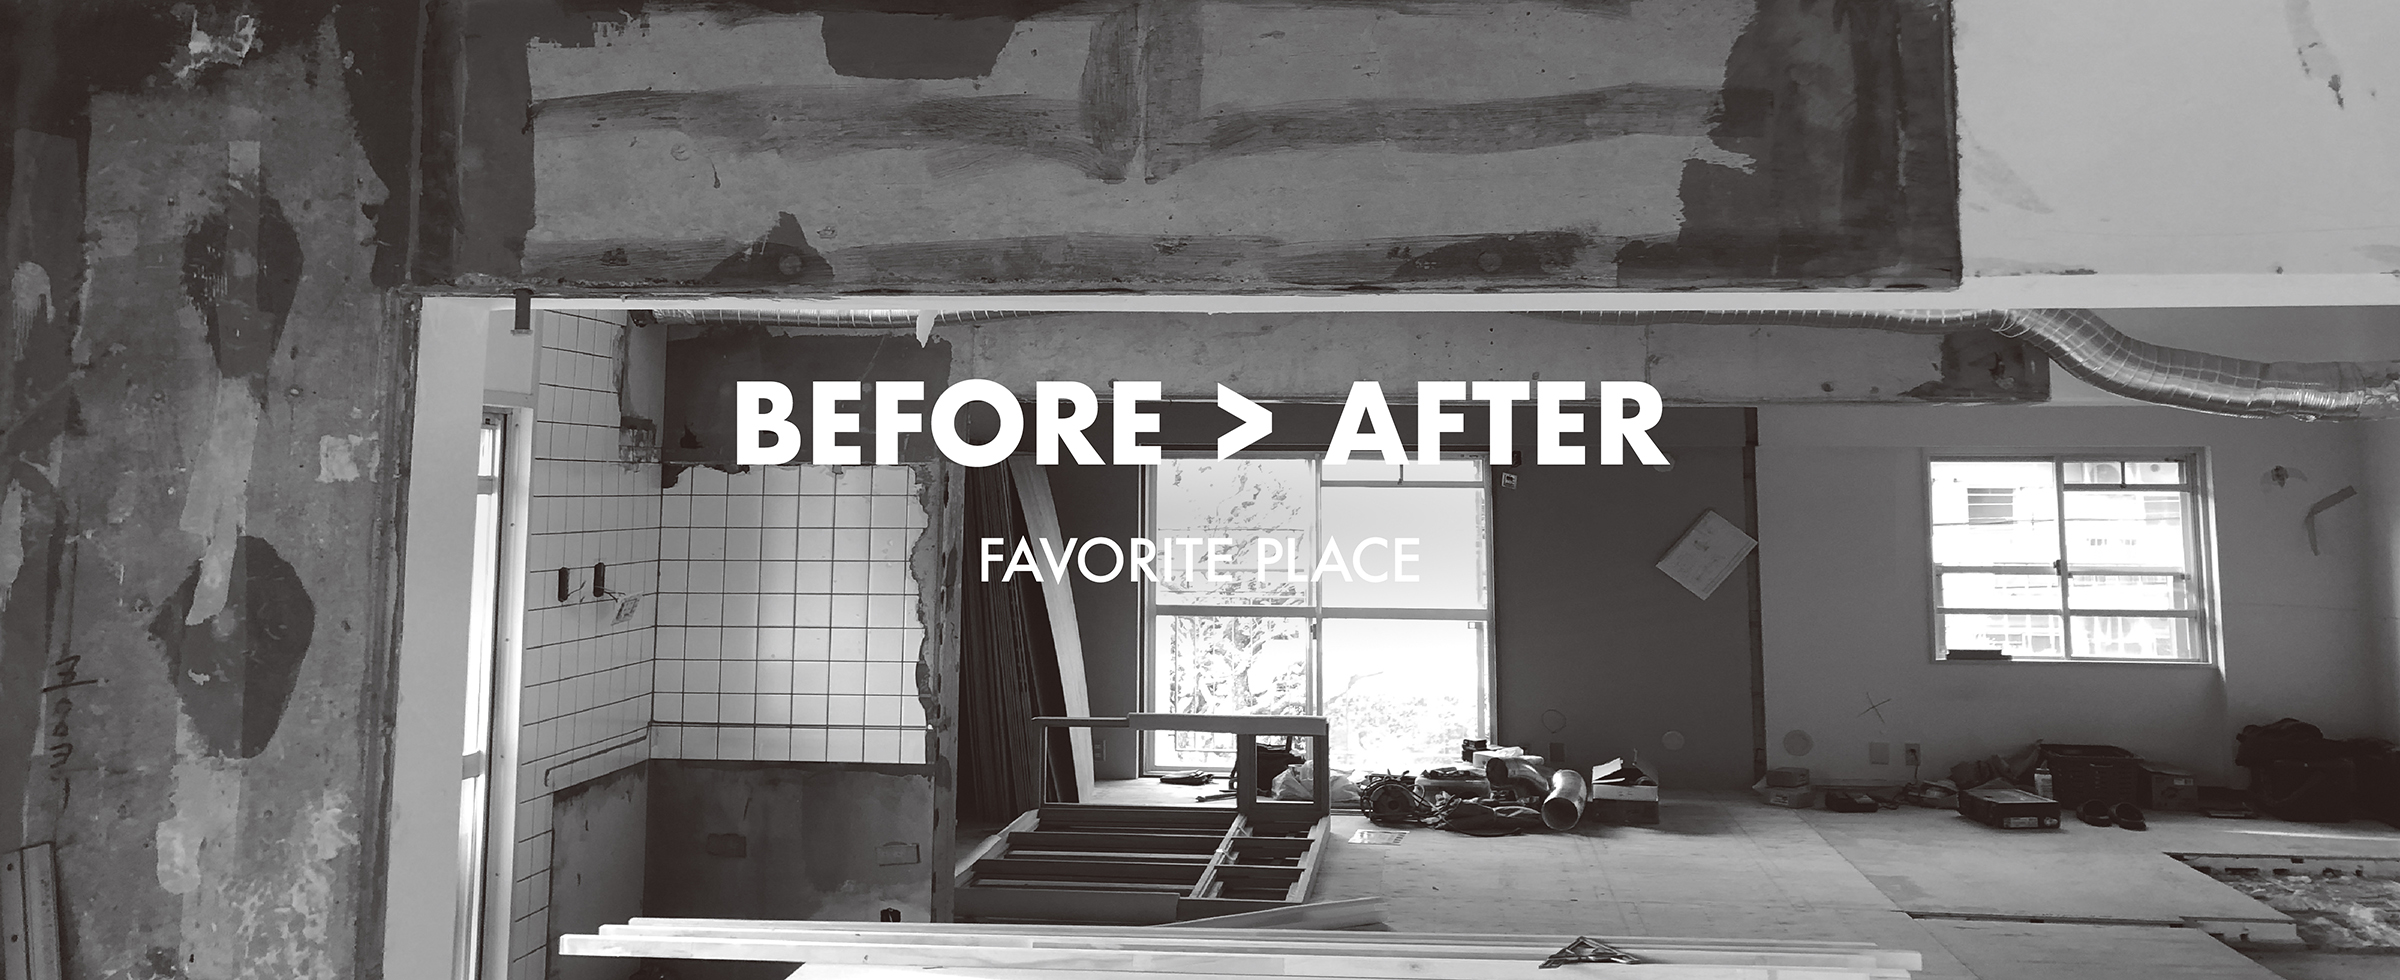 Before > After